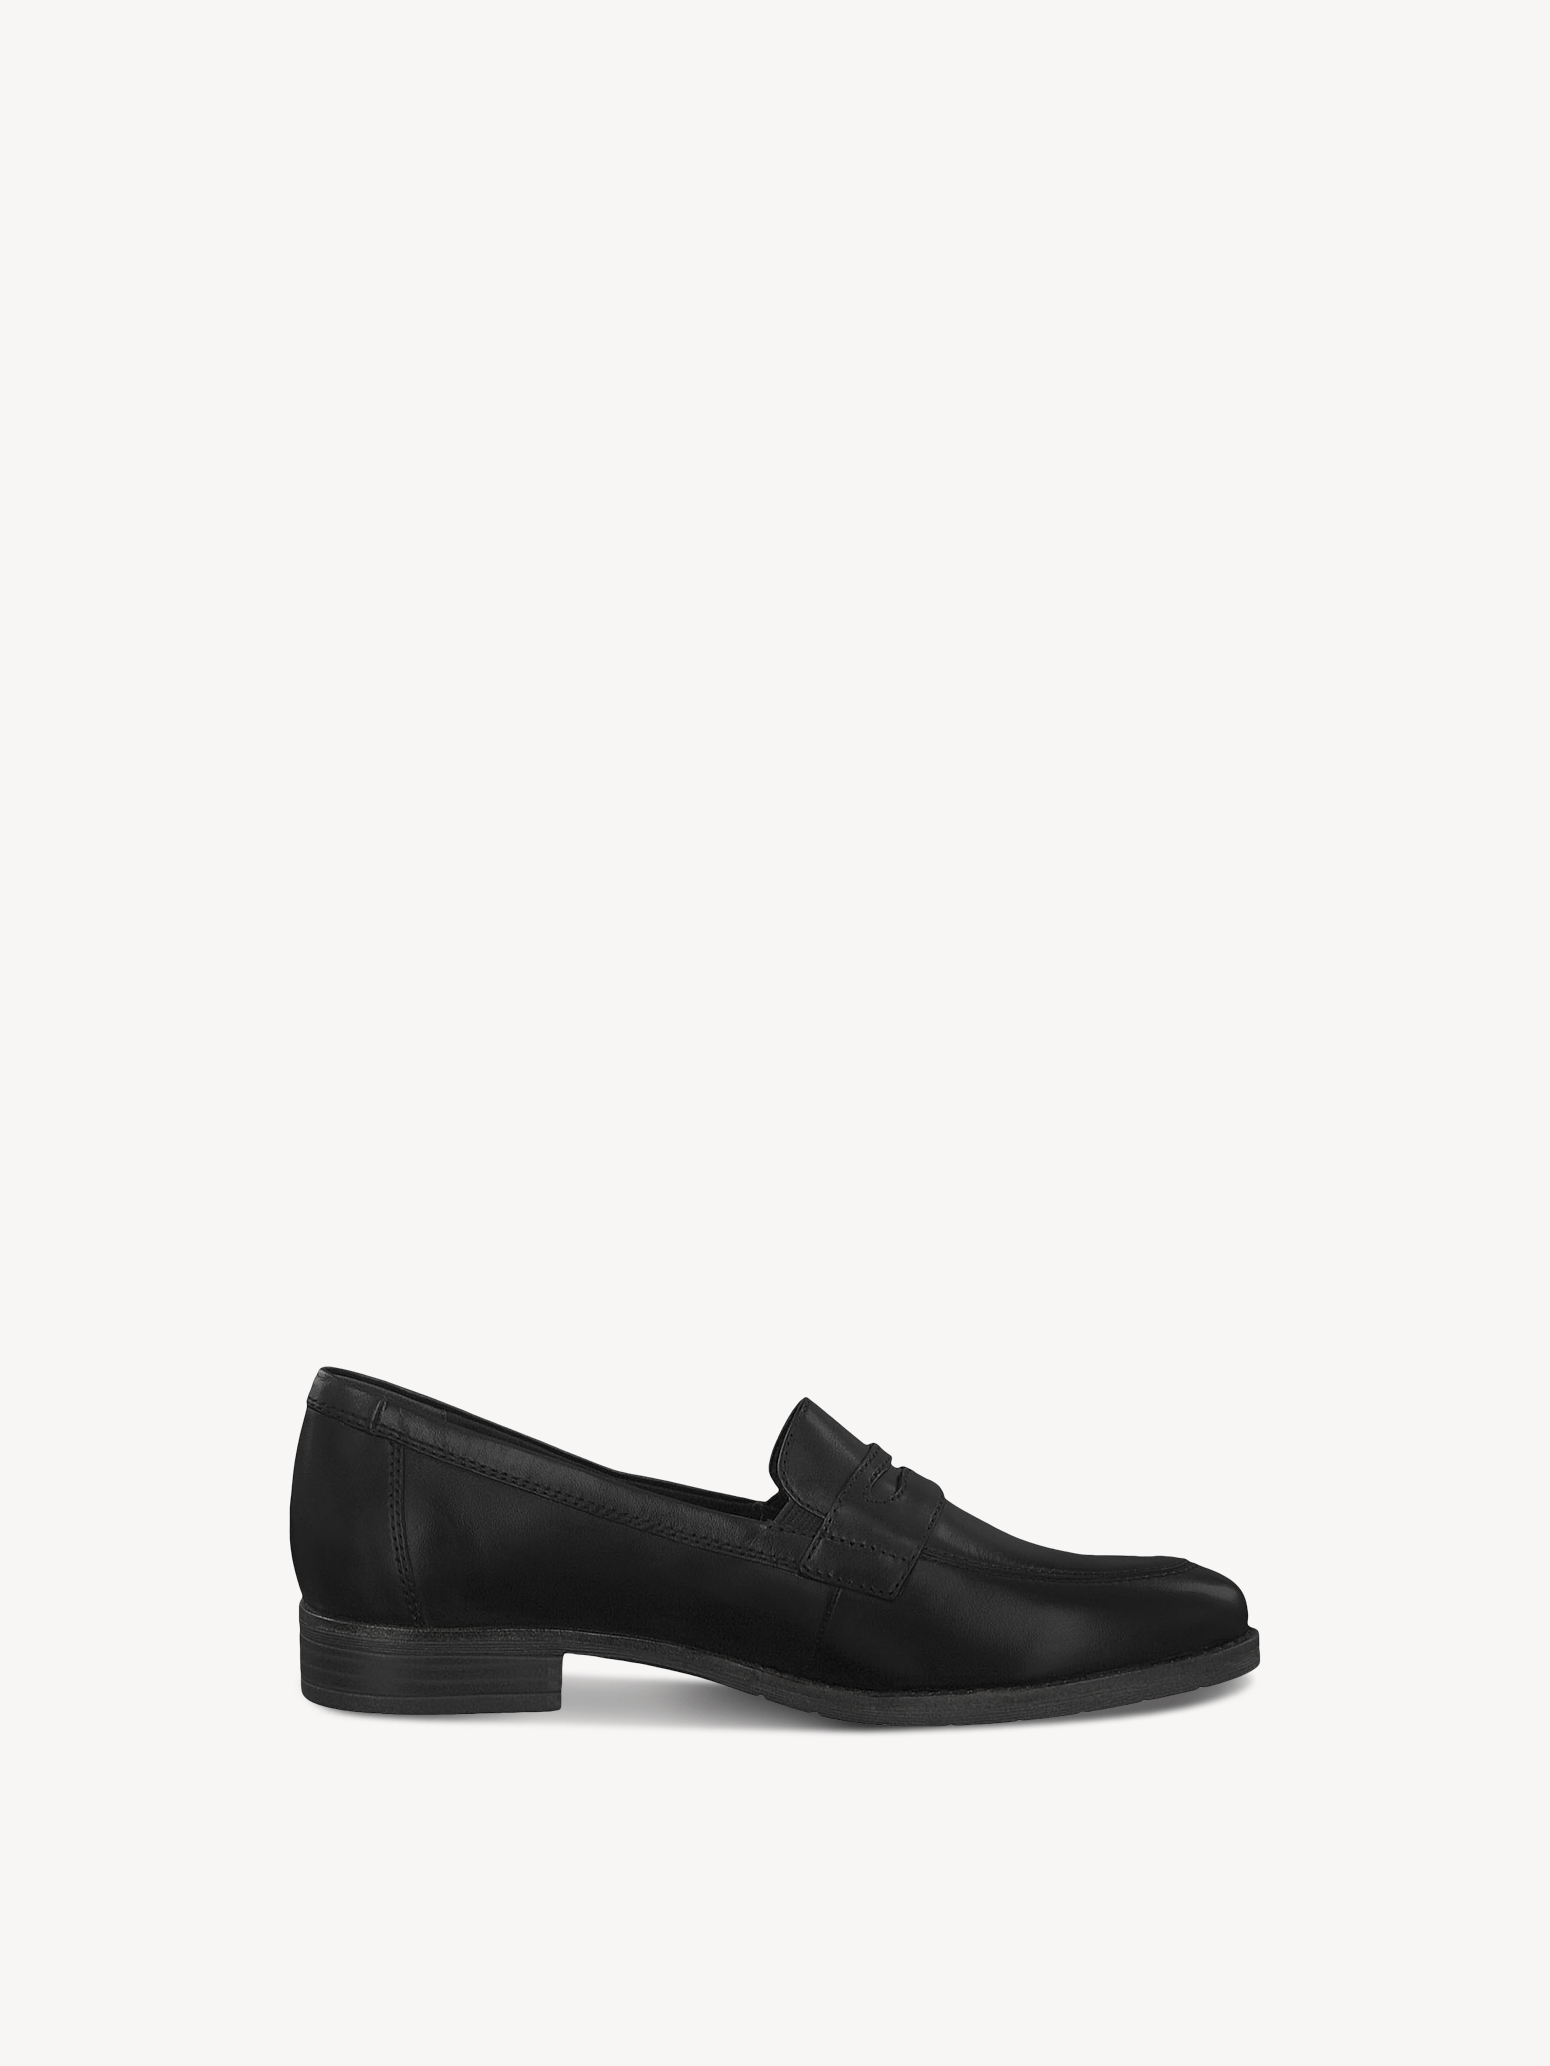 Leather Slipper - black, BLACK, hi-res